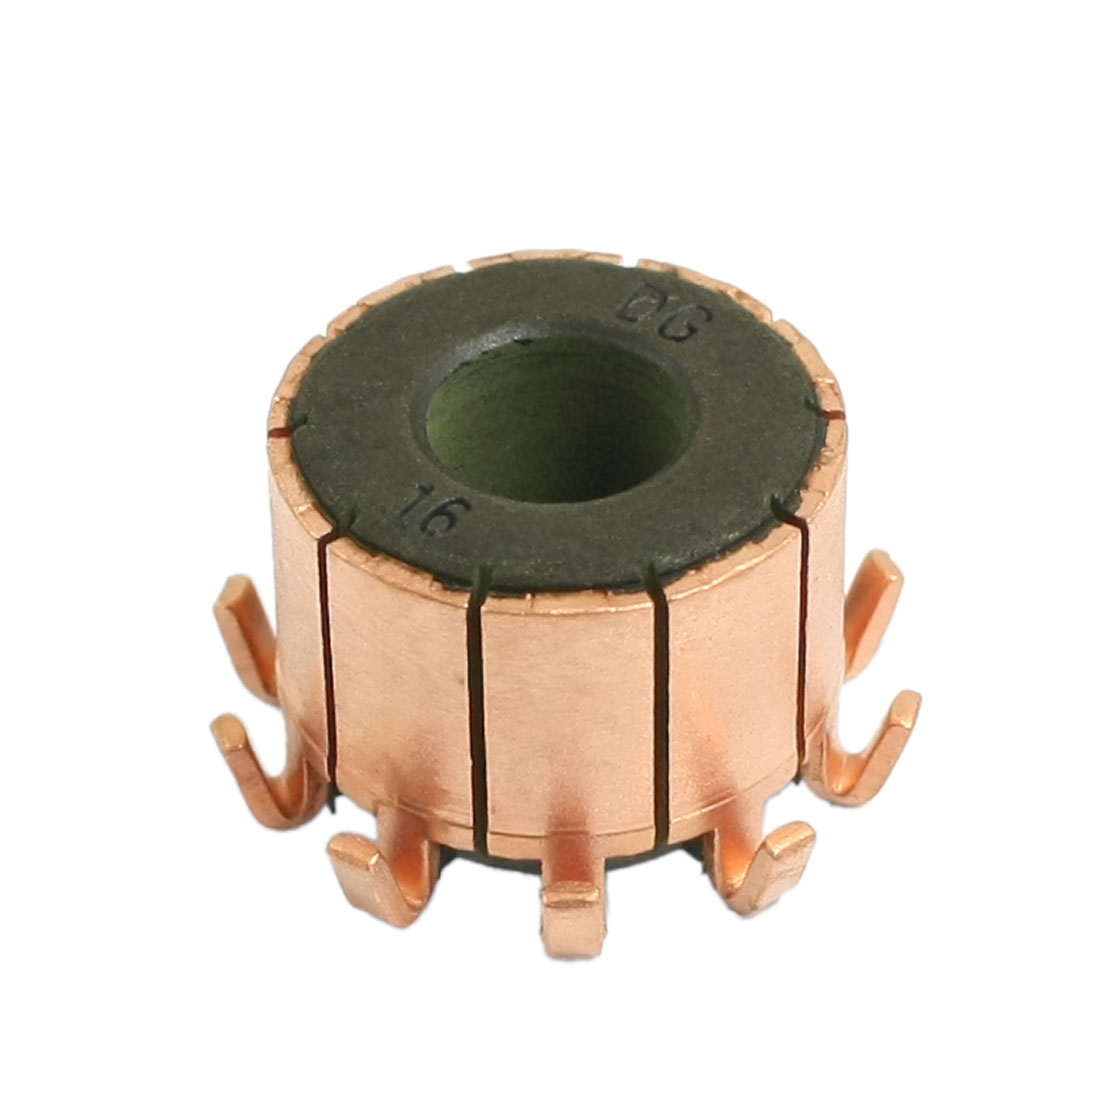 8mm x 18.1mm x 13.8mm Copper Case Auto Alternator Motor Power Tool Commutator